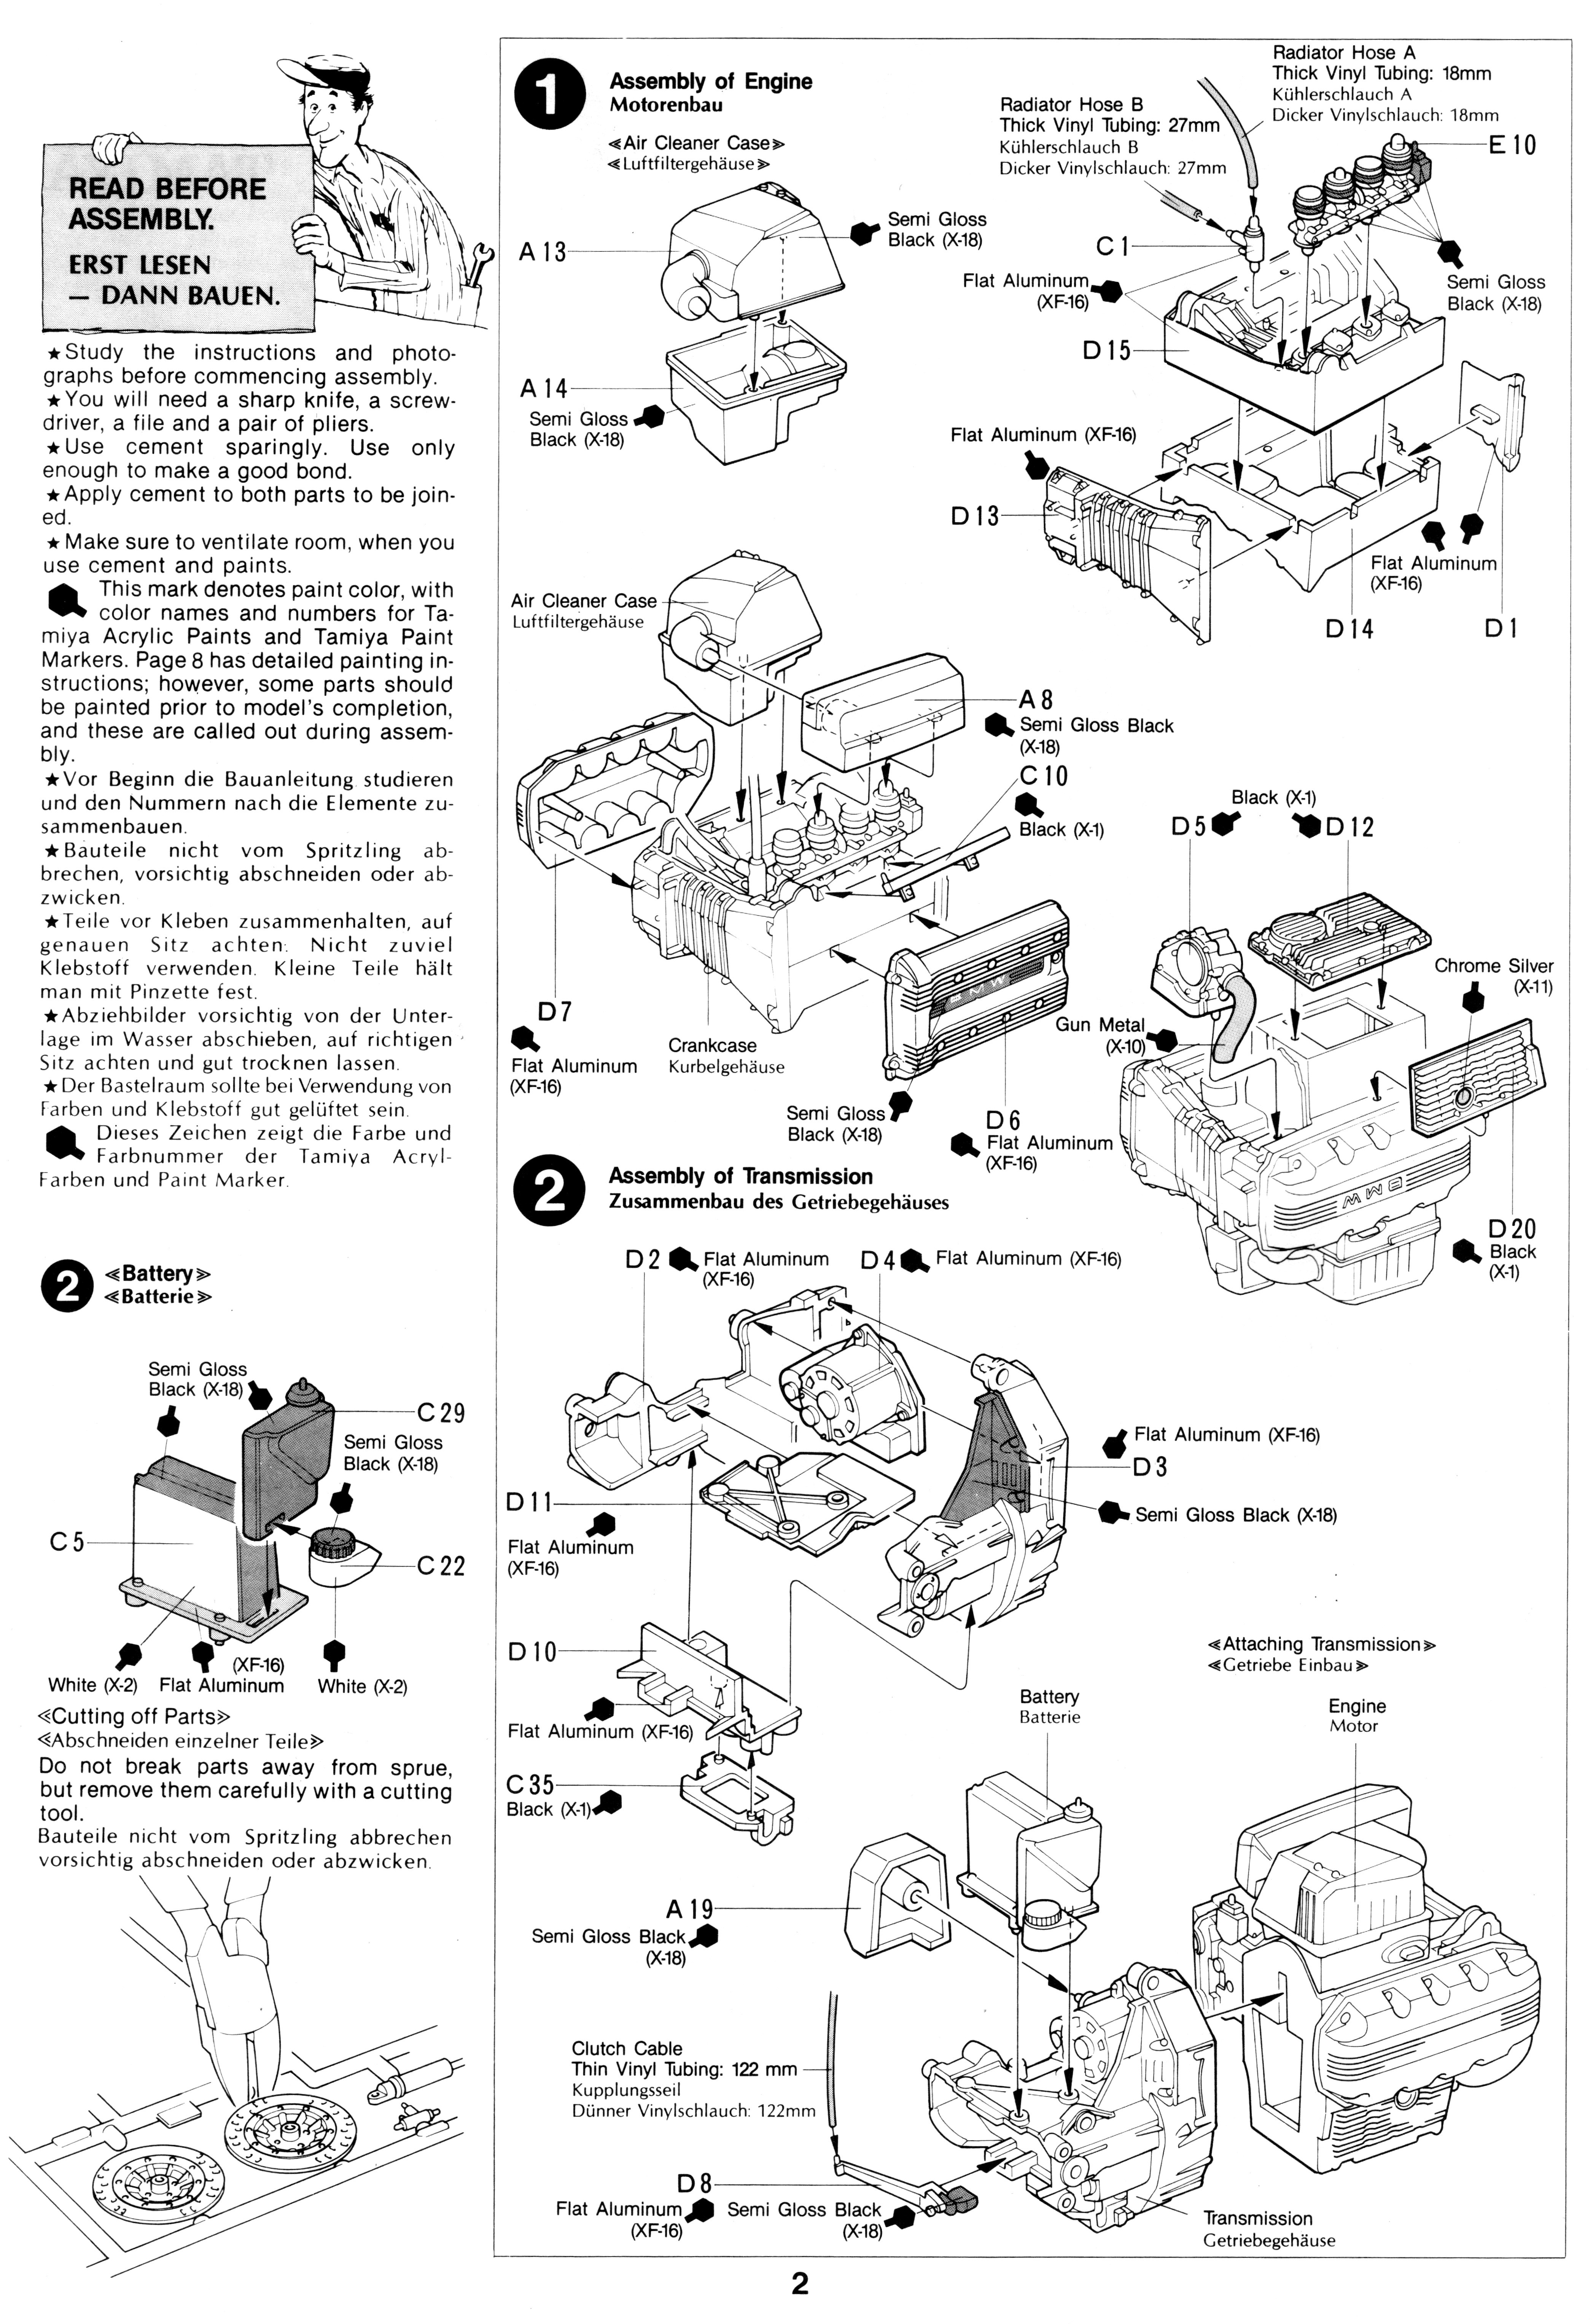 Techday moreover Index additionally Engine Oil Additive Images furthermore 51754 furthermore Bmw Motorcycles Wiki. on bmw k100 engine